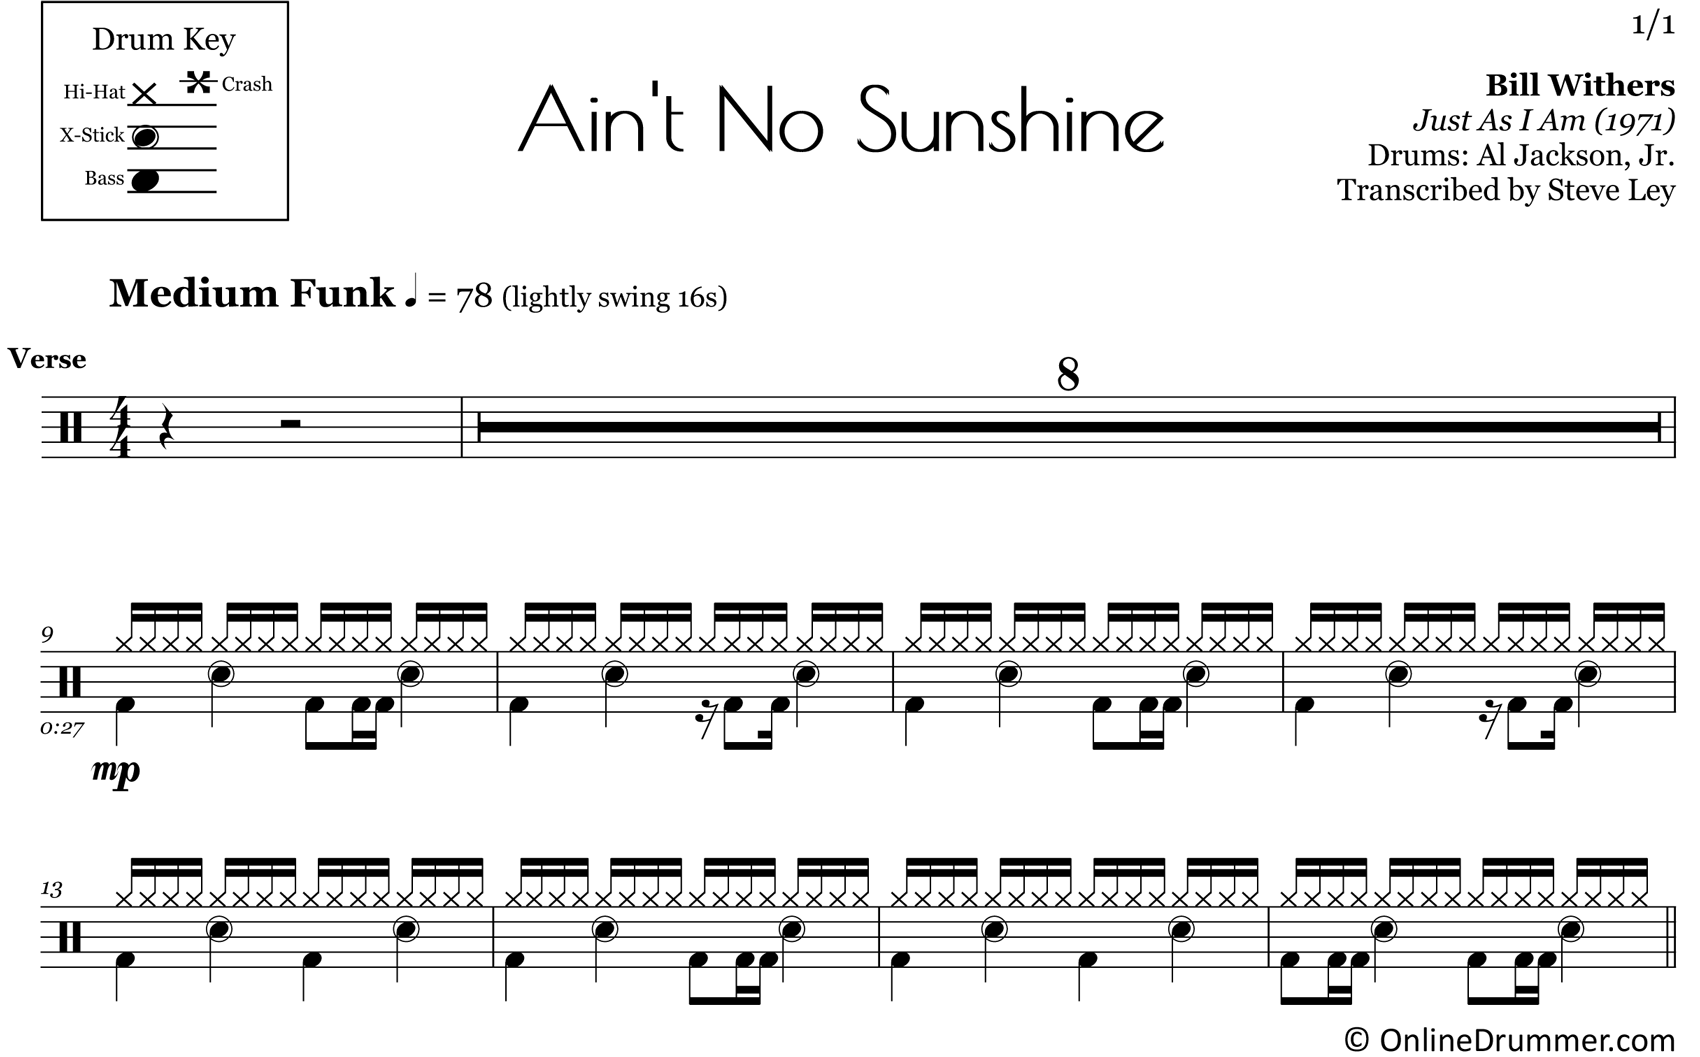 Ain't No Sunshine - Bill Withers - Drum Sheet Music